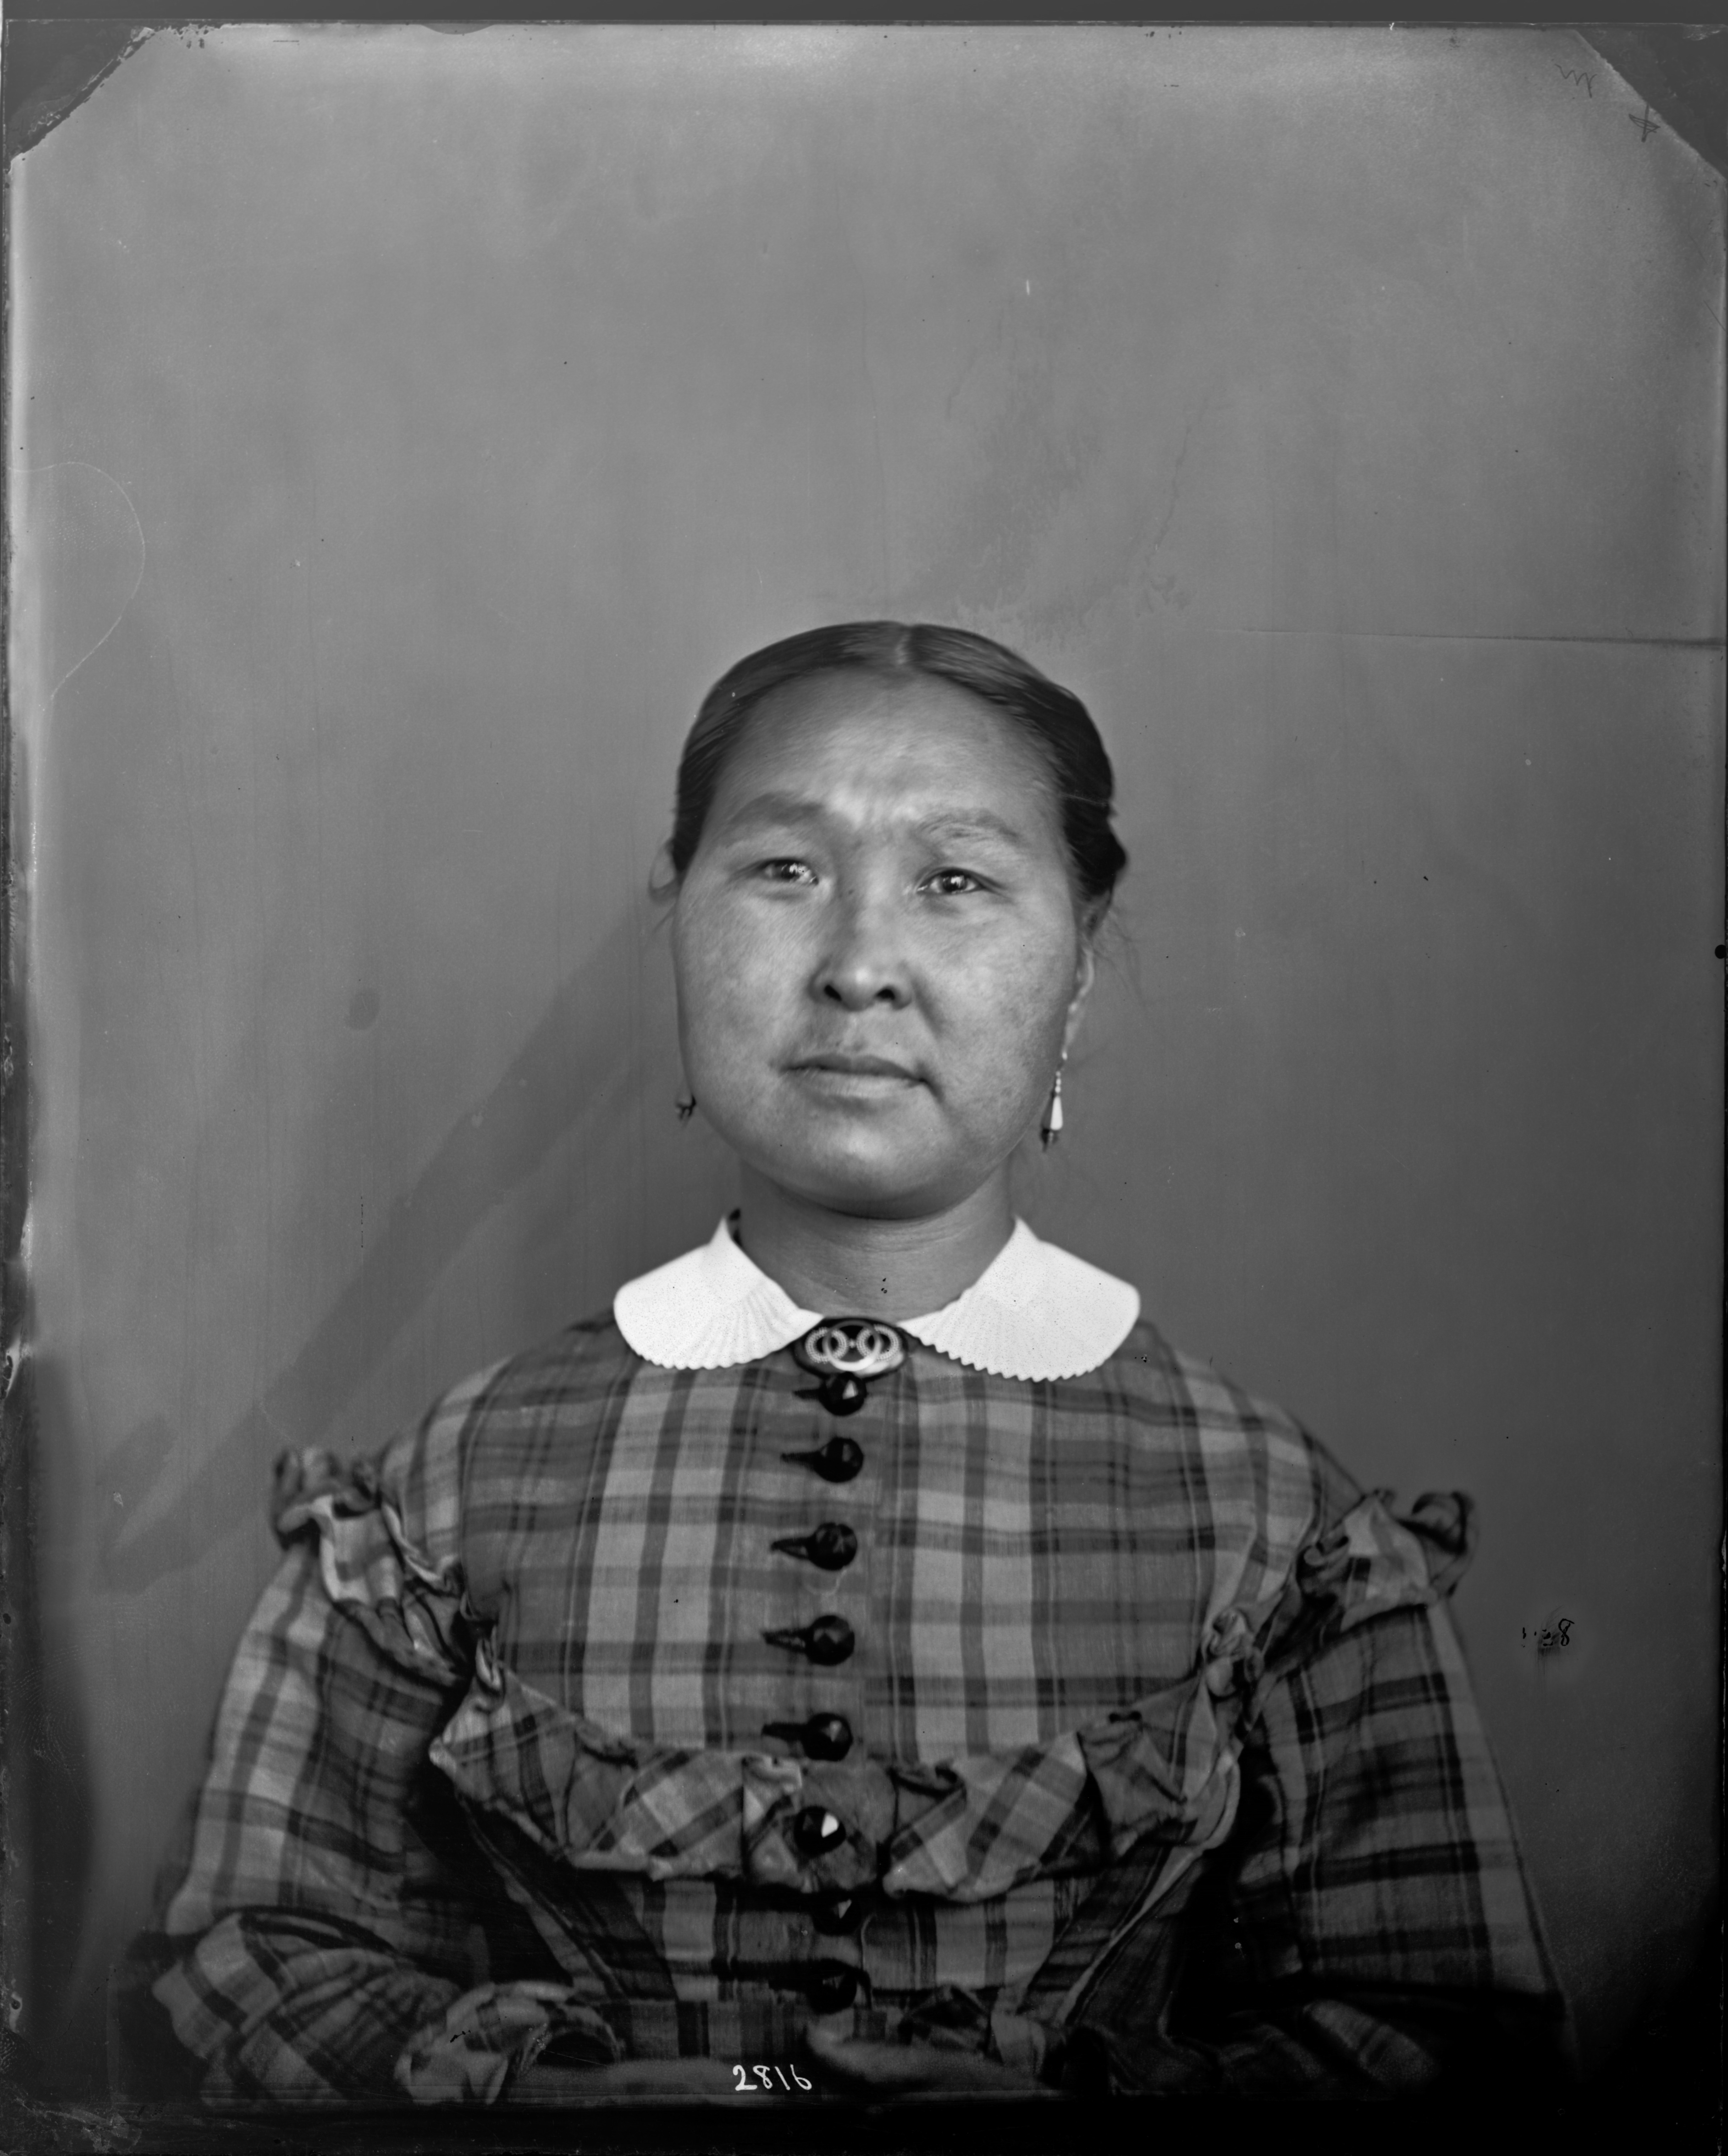 Portrait of Taqulittuq. Her hair is parted in the middle and pulled back into a bun. She is wearing